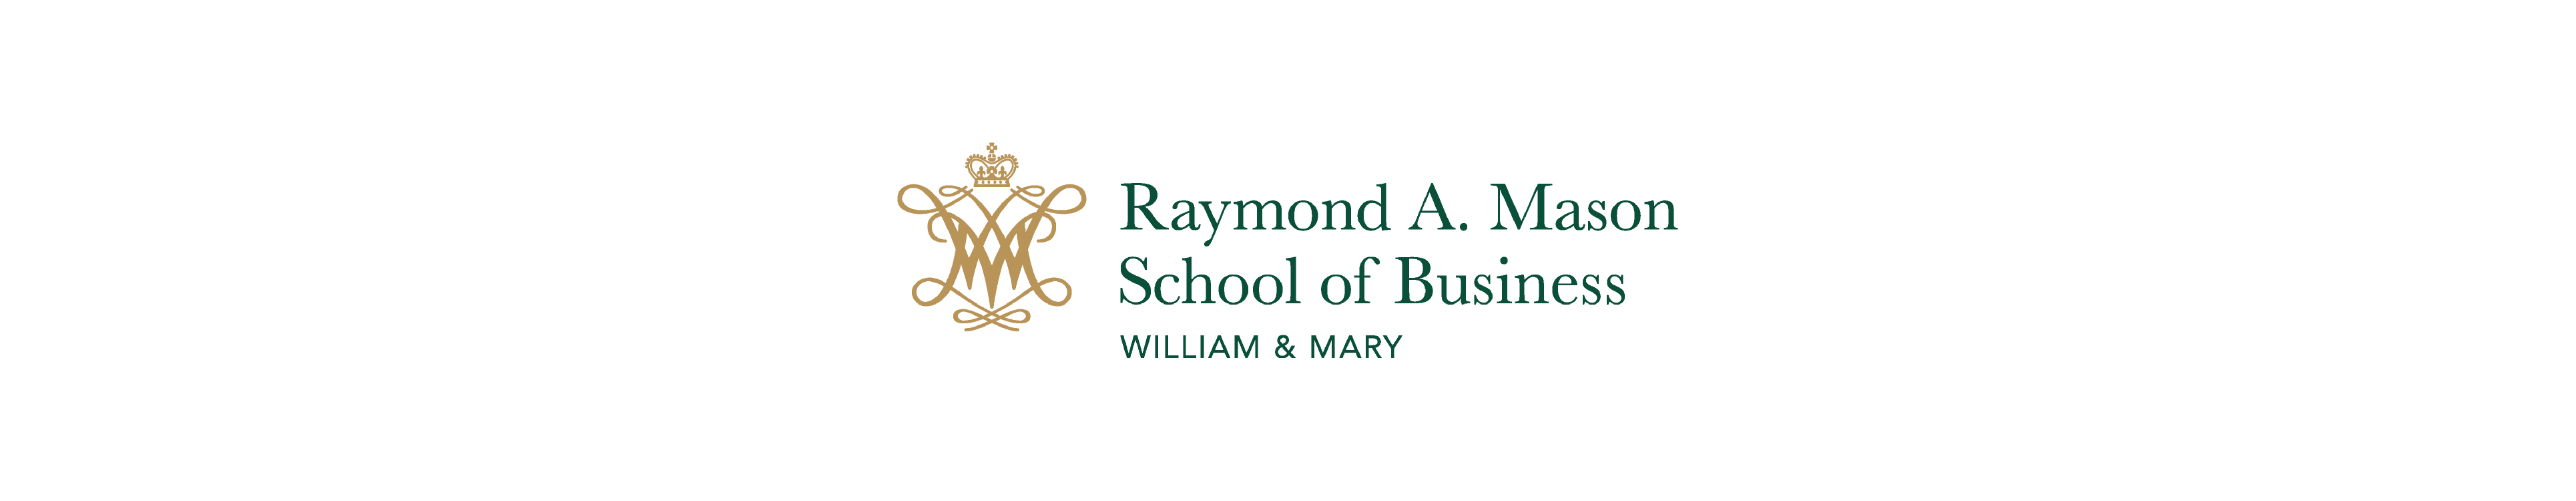 Raymond A. Mason School of Business Annual Homecoming Celebration - 10.19.19